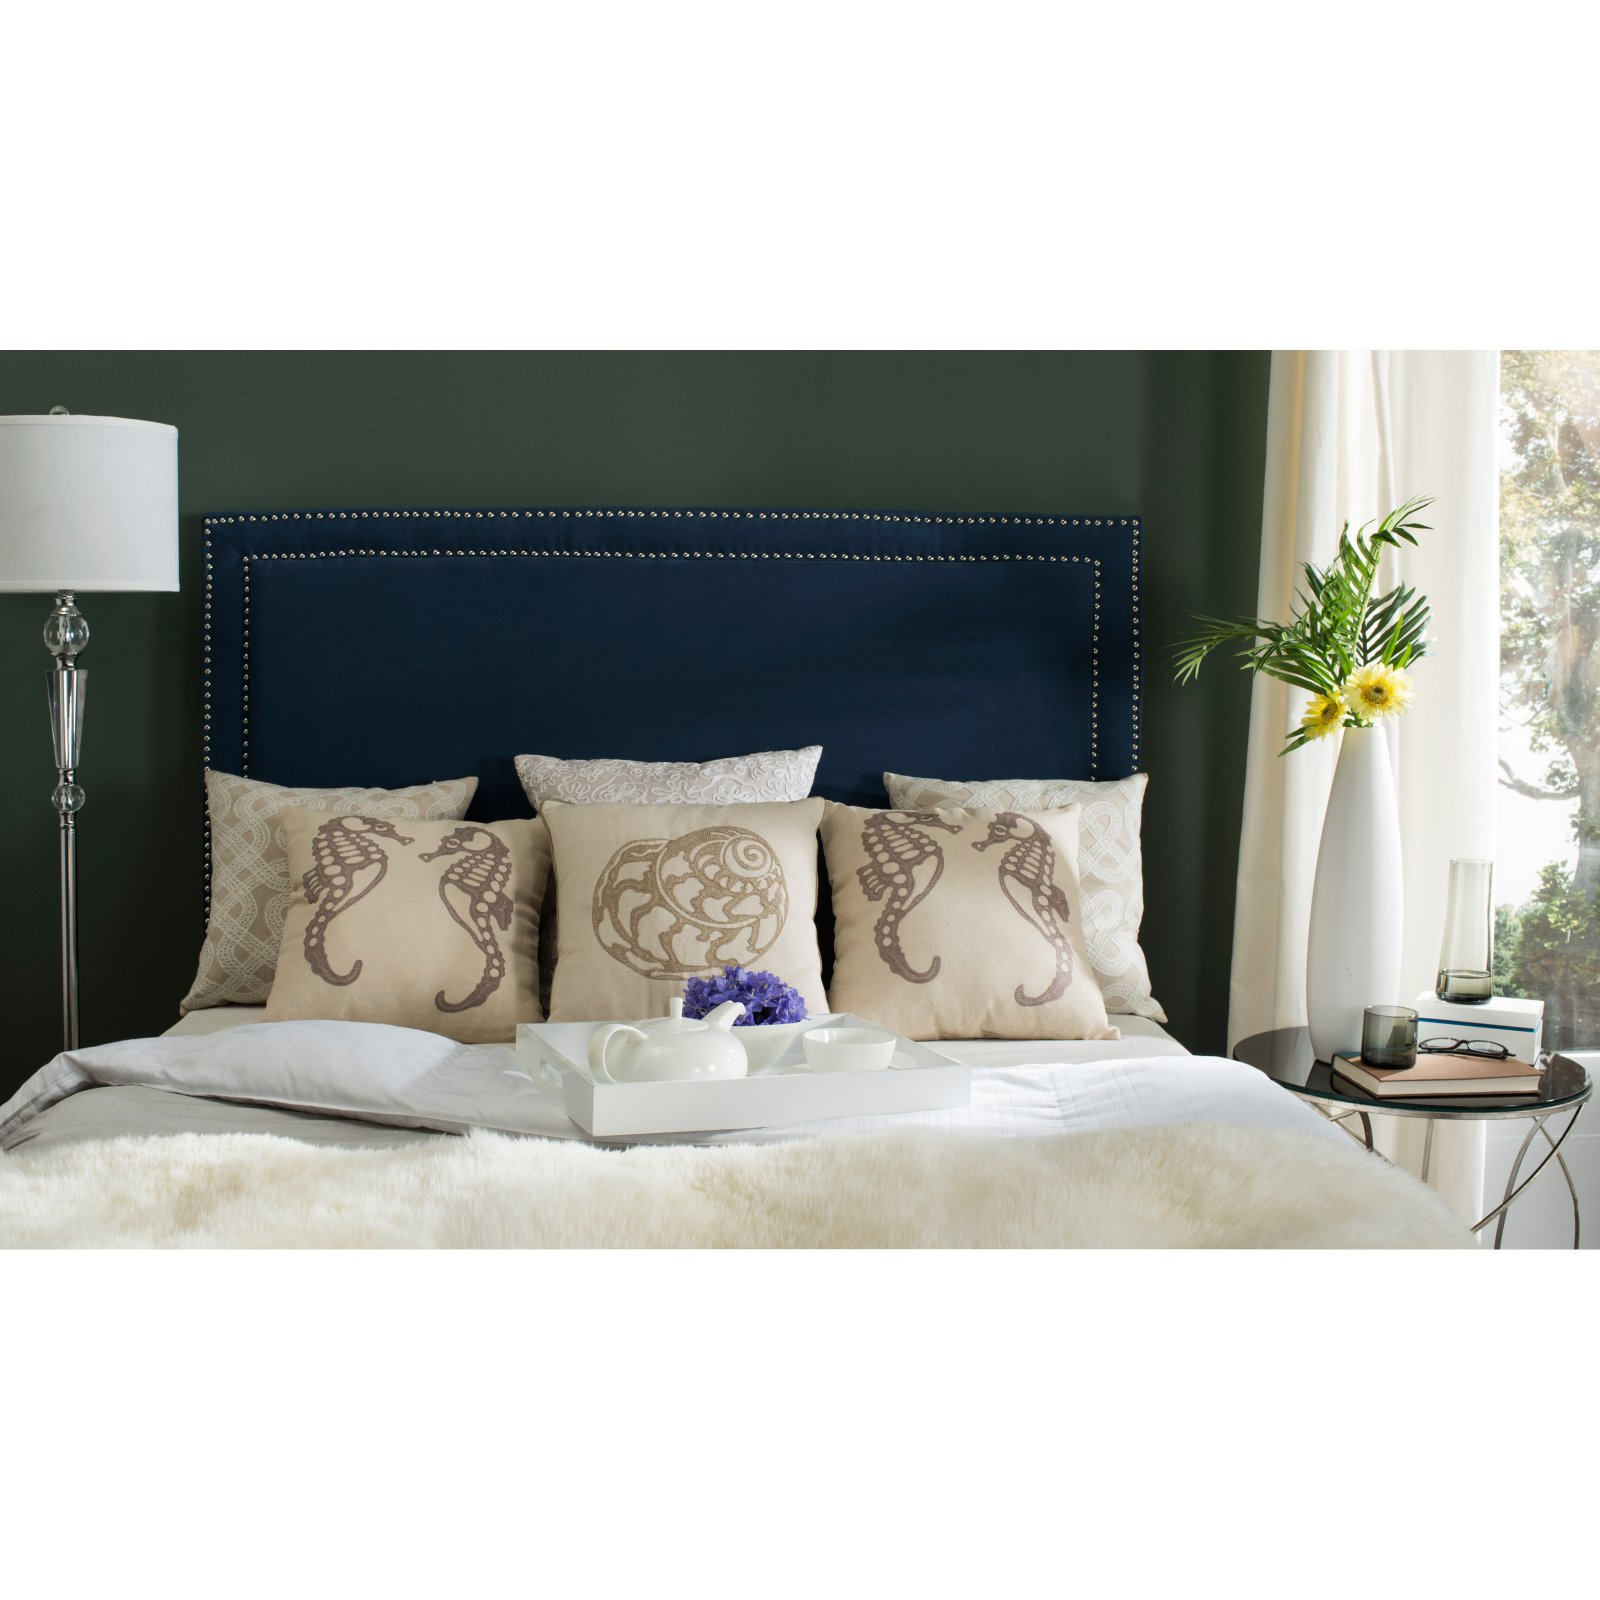 Safavieh Cory Headboard with Nailheads, Available in Multiple Colors and Sizes